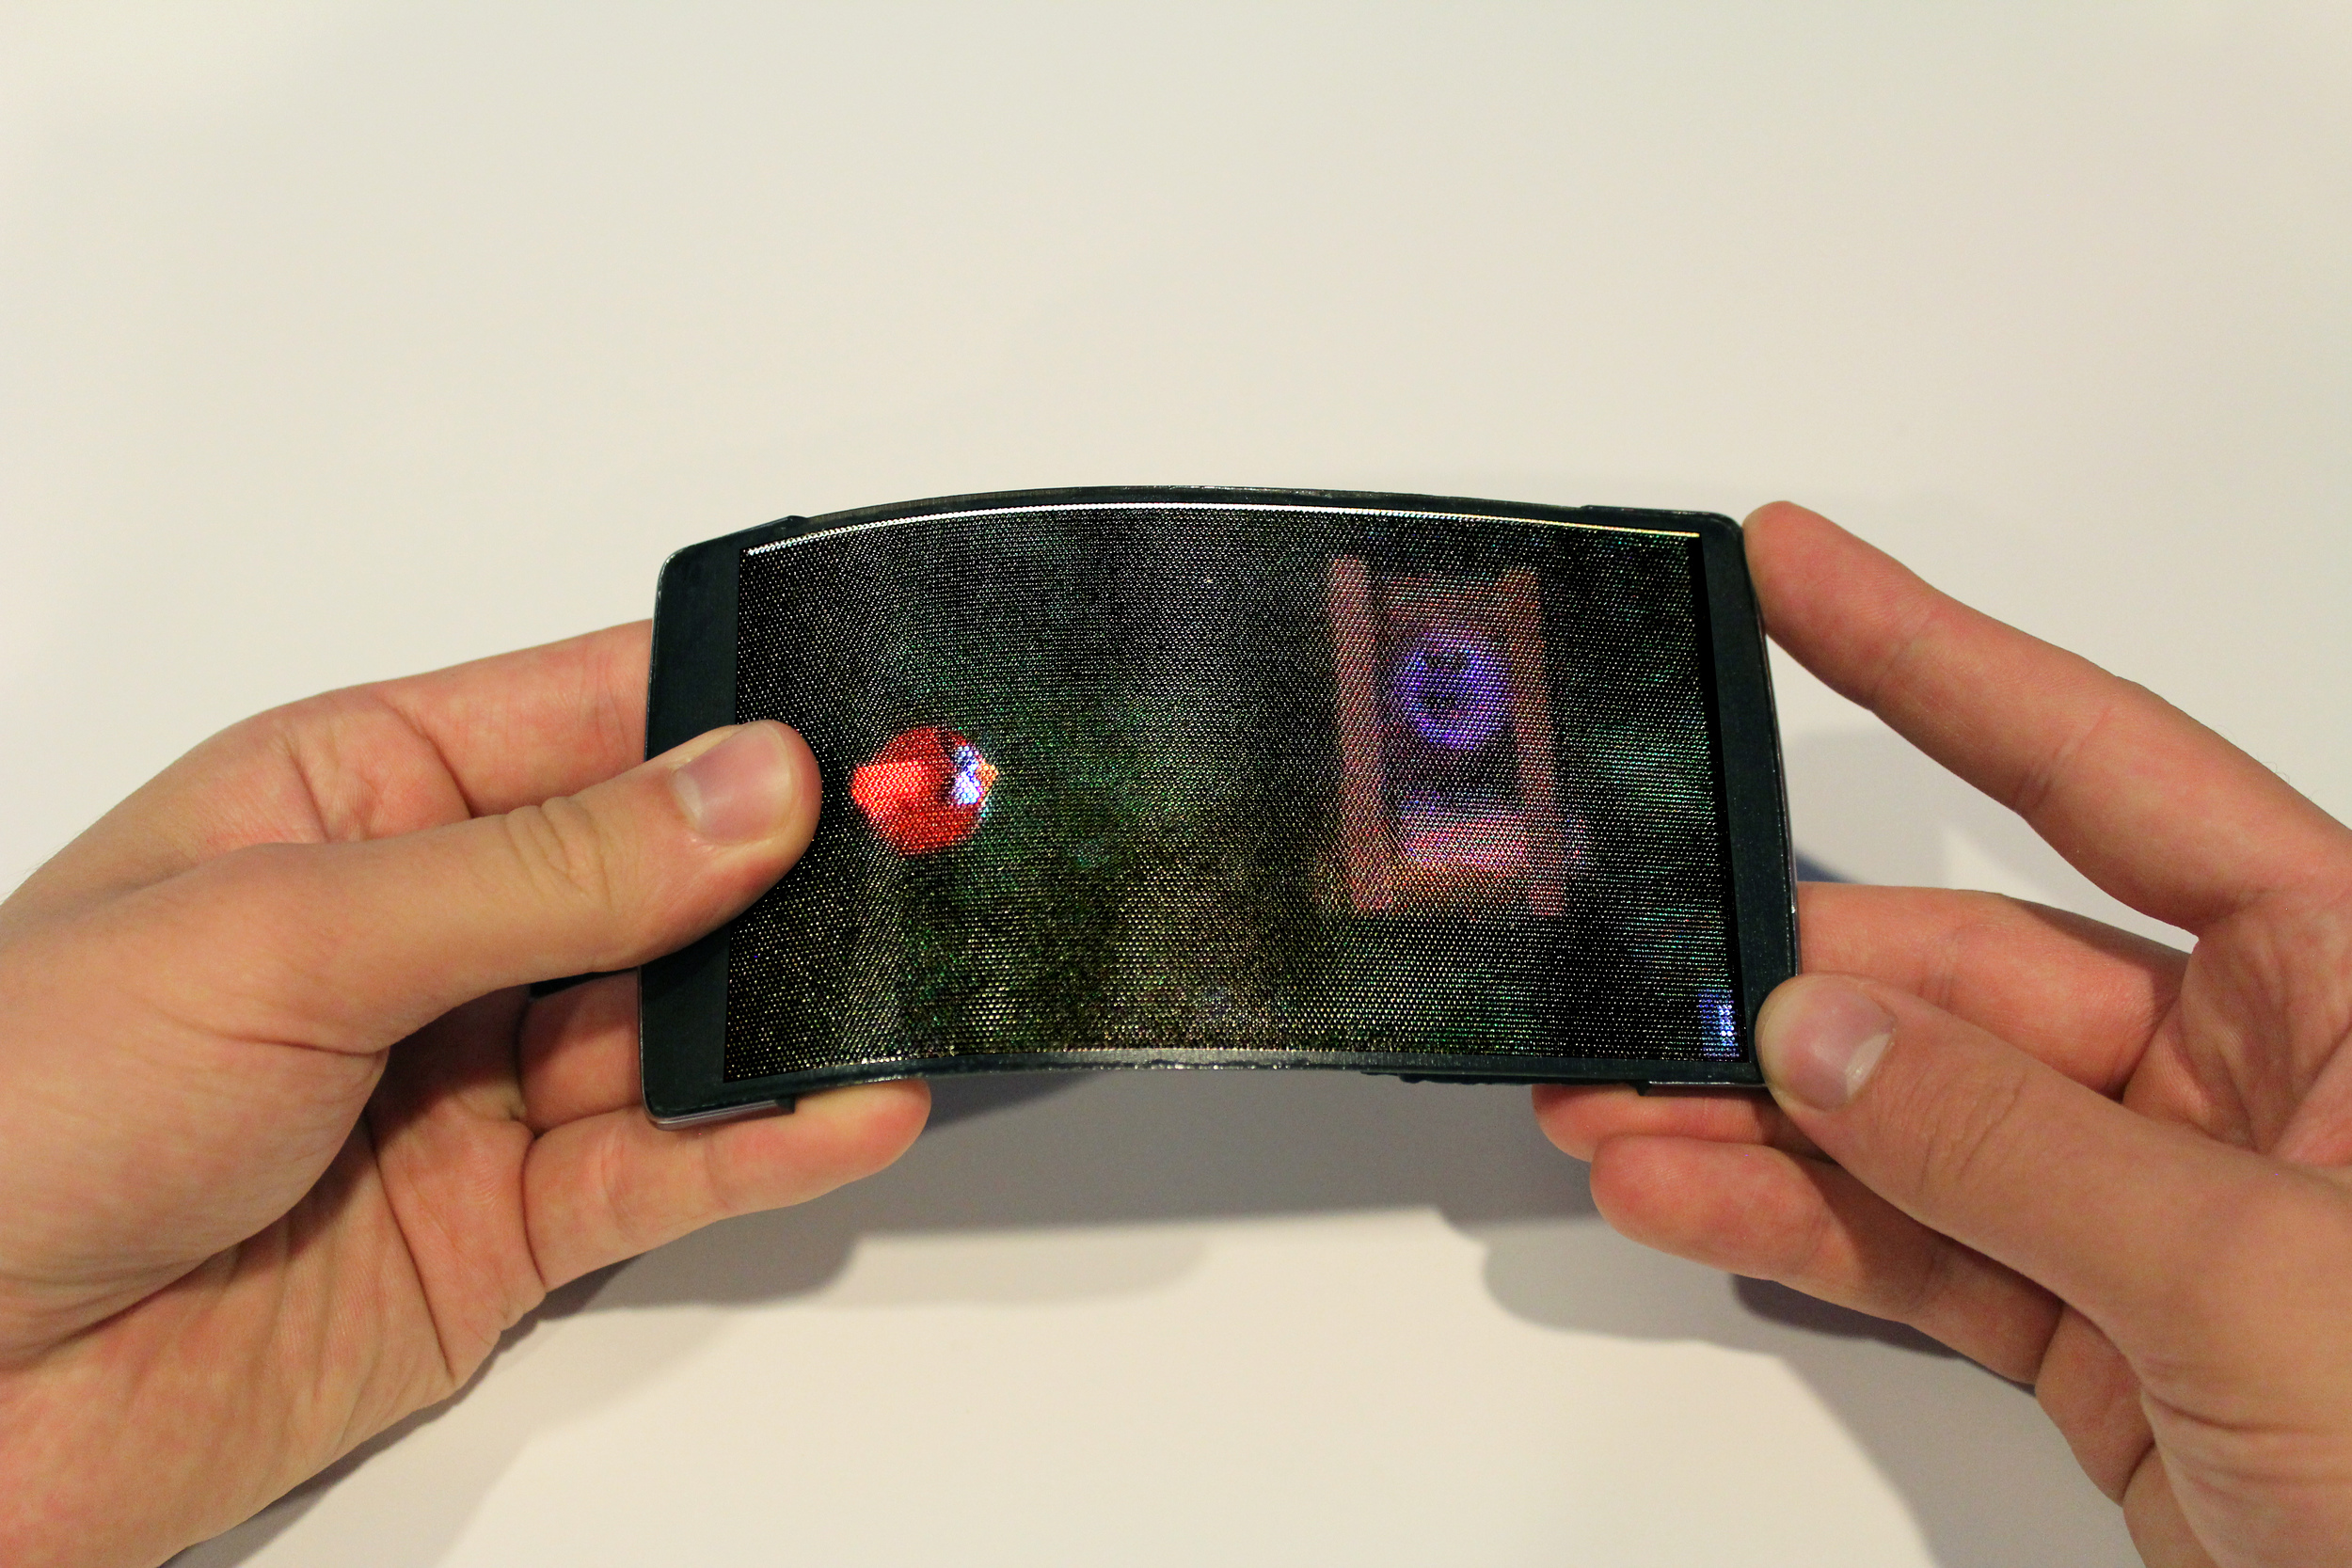 HoloFlex (2016): Holographic 3D Game